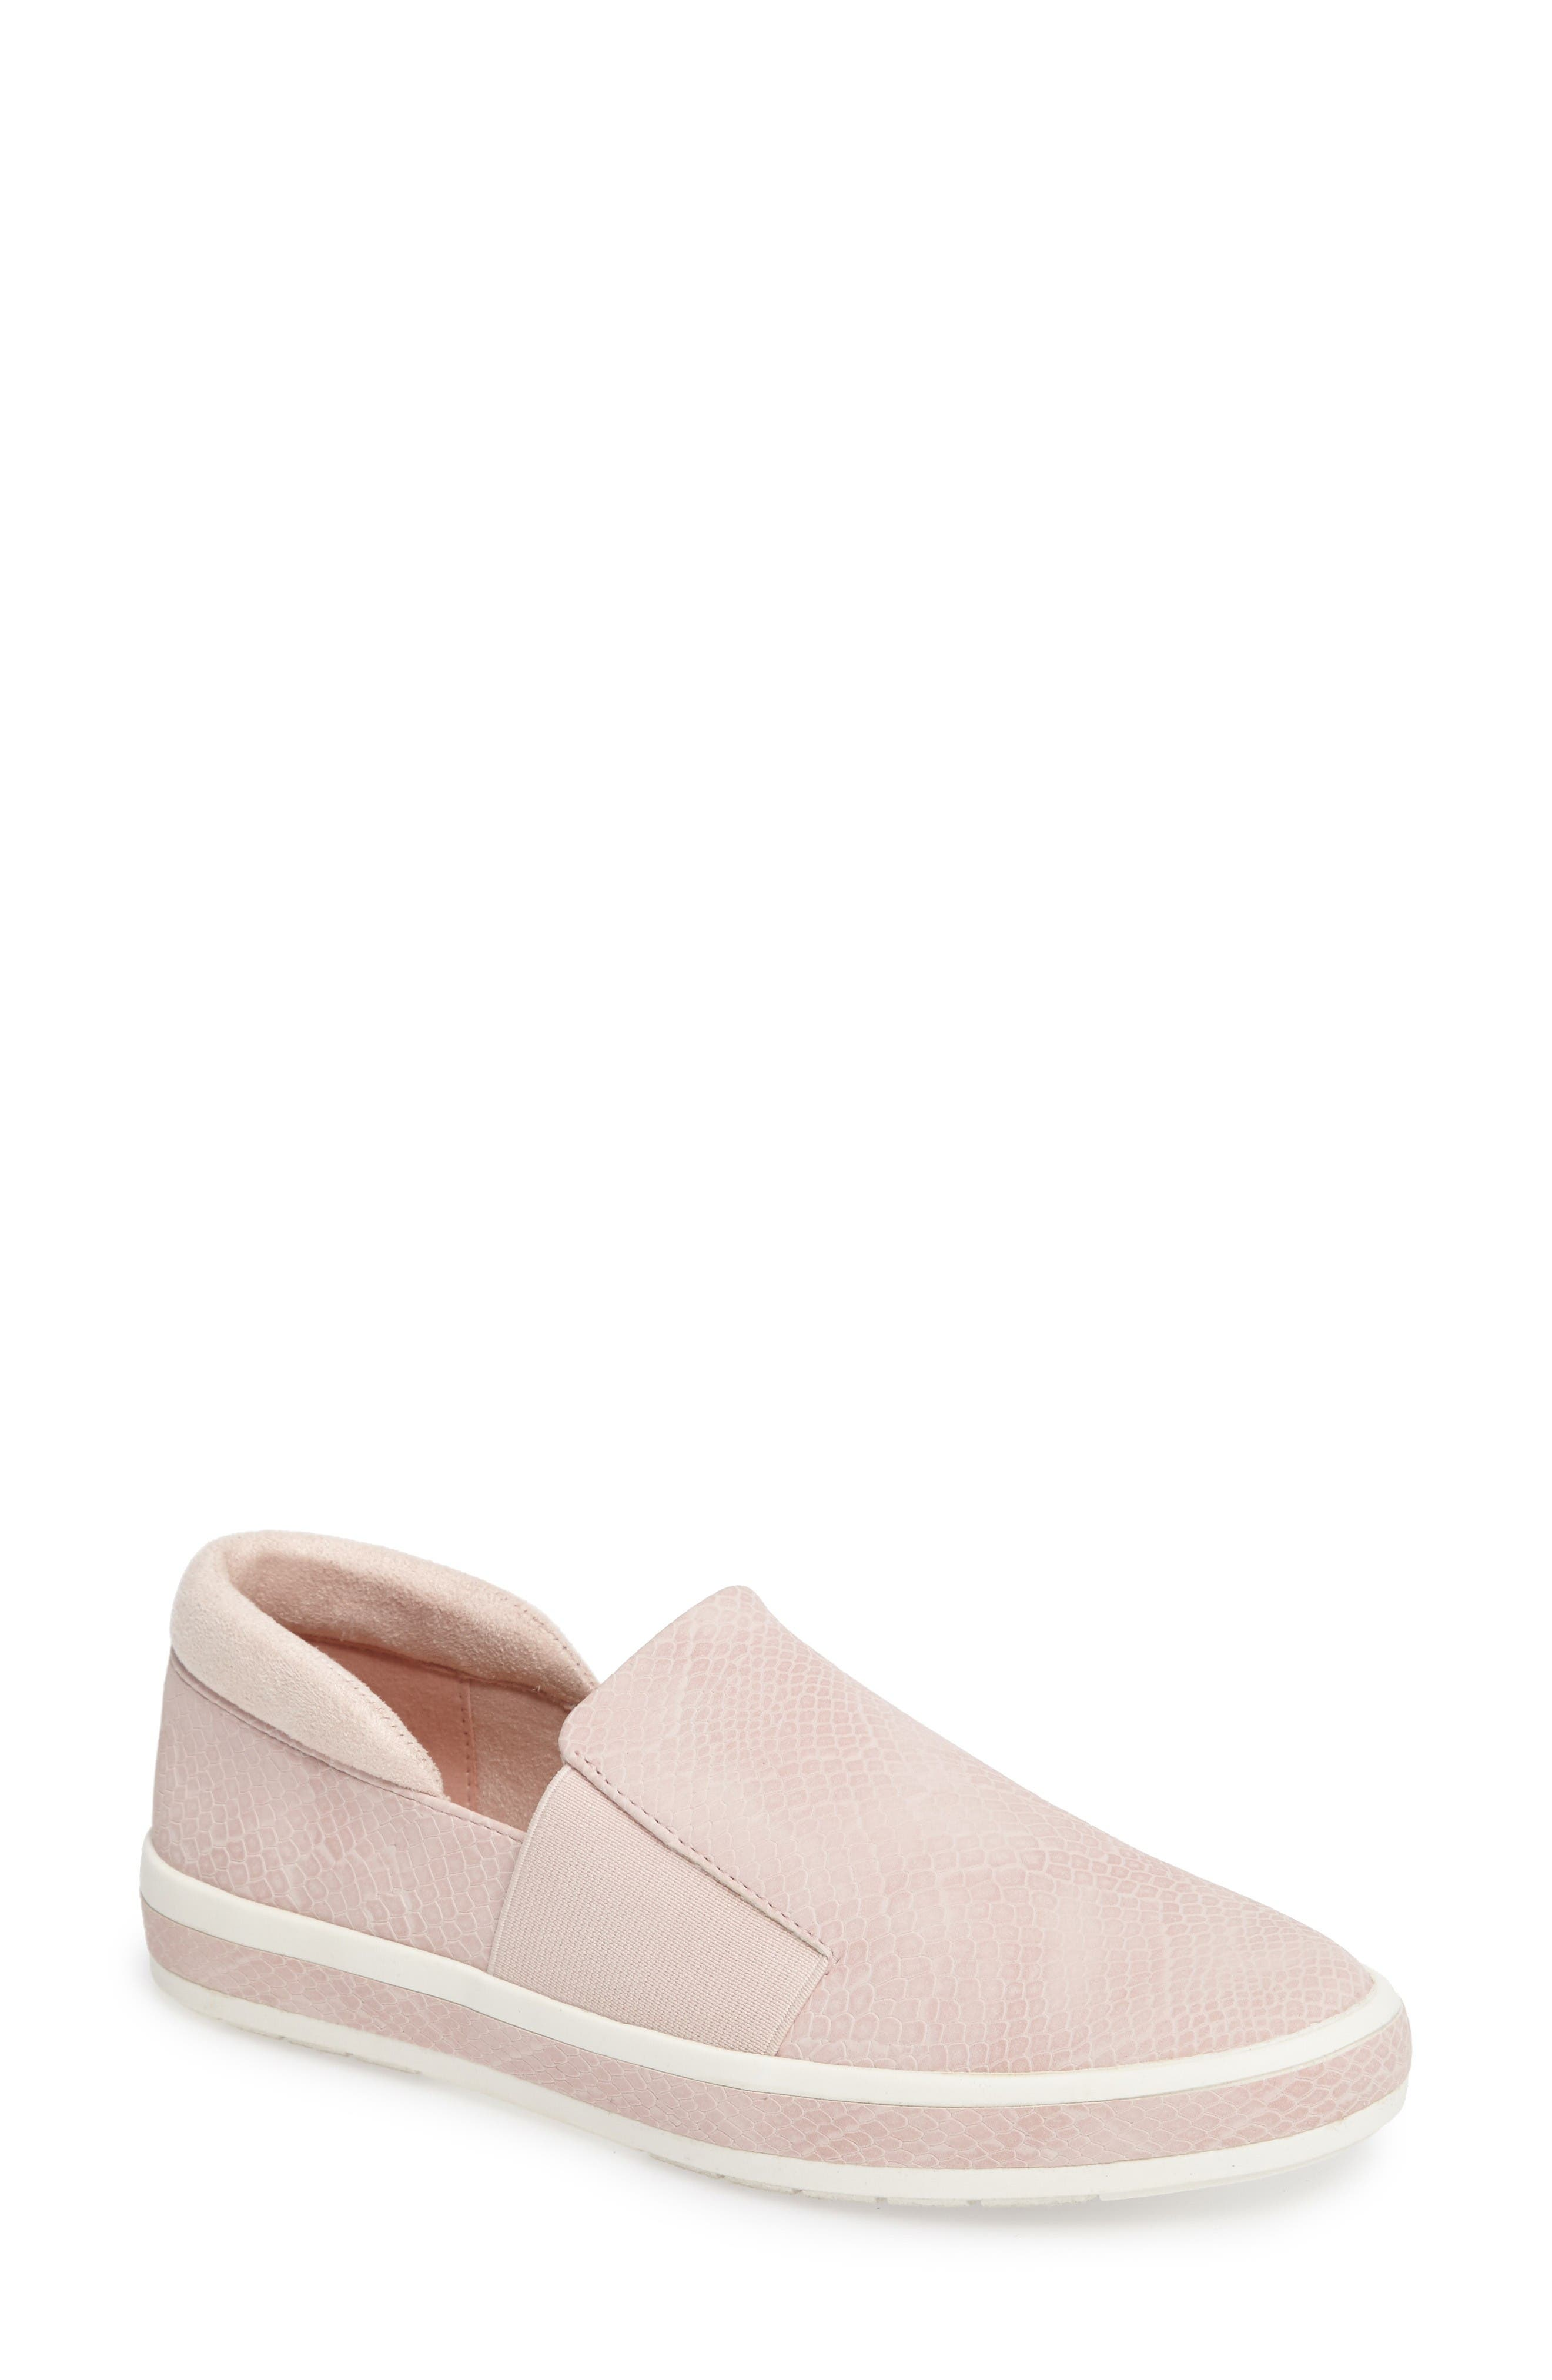 Bella Vita Switch II Slip-On Sneaker (Women)